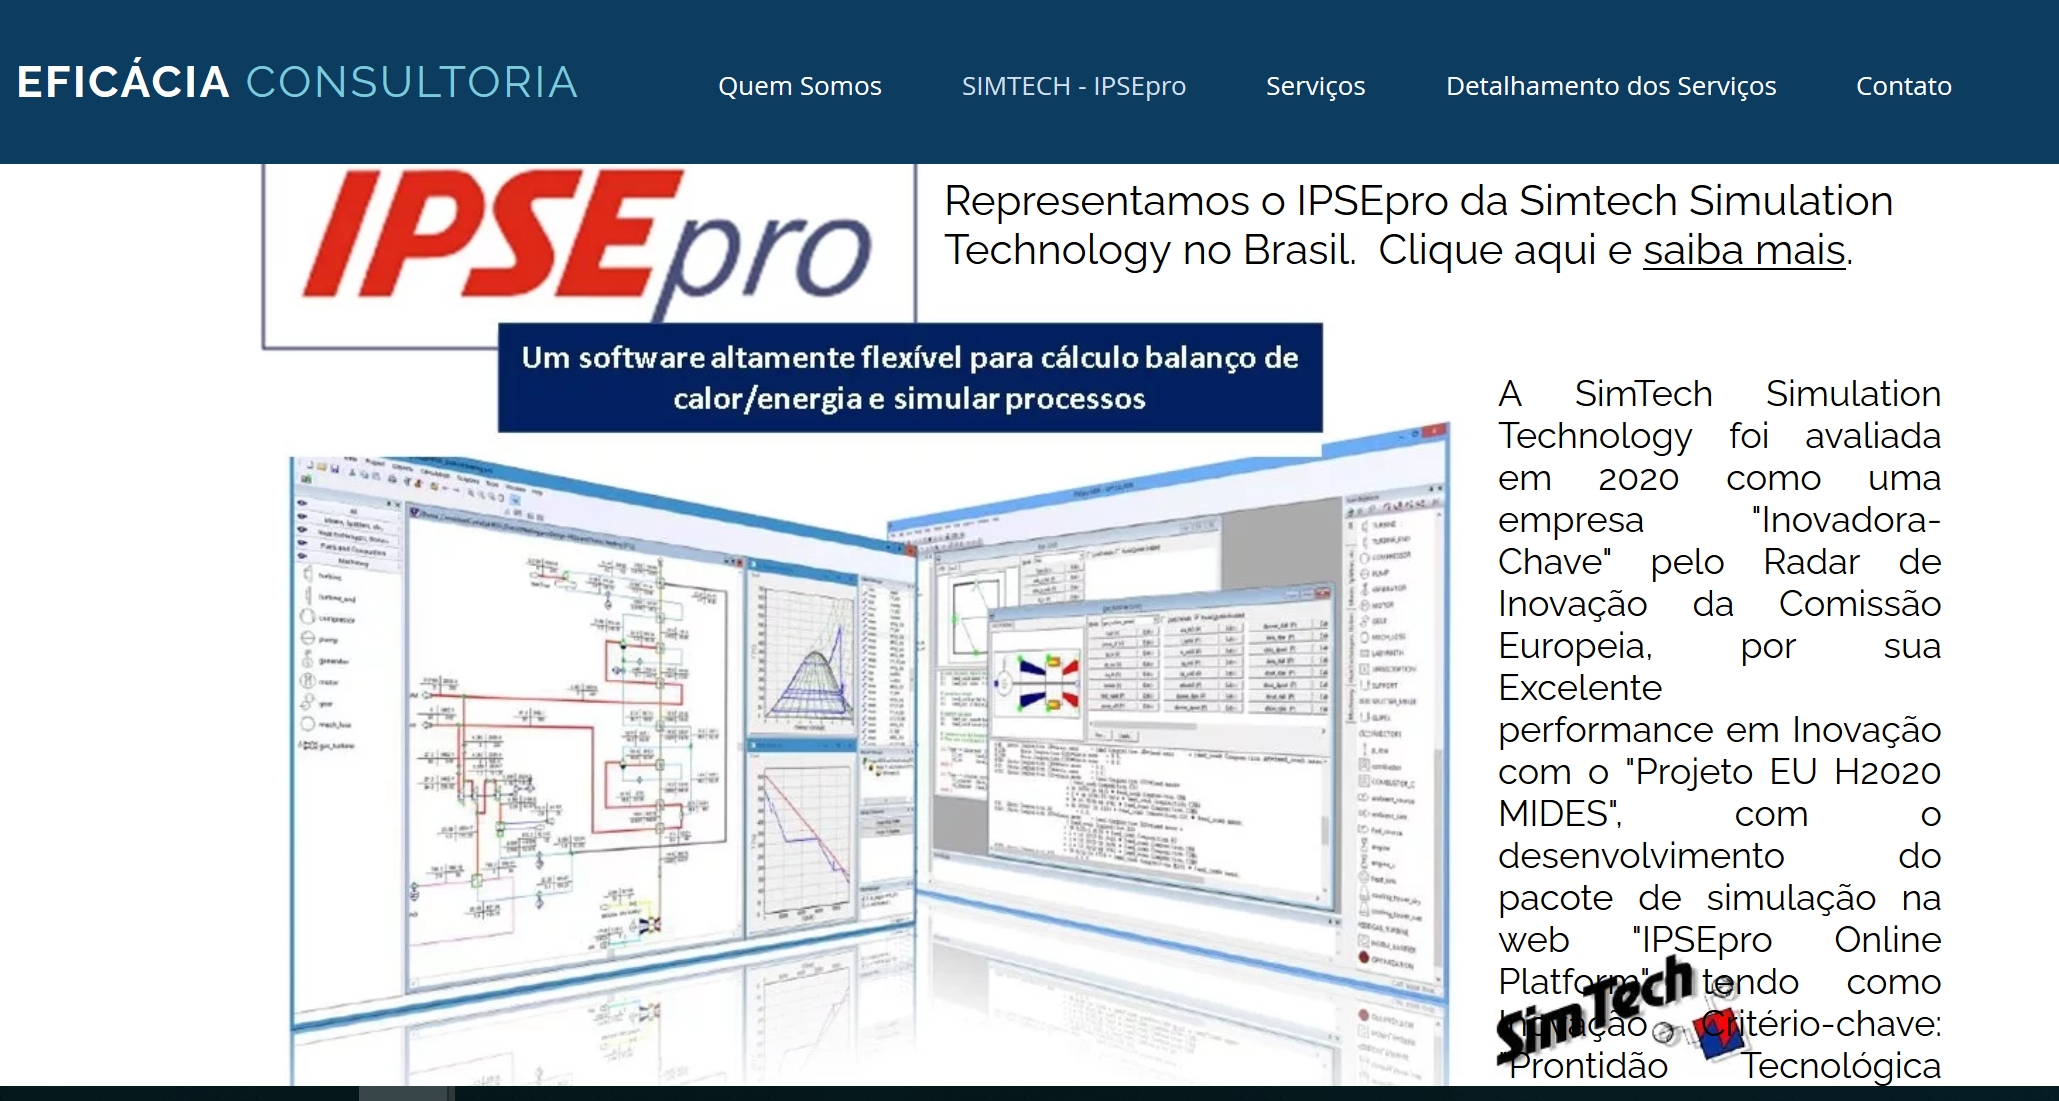 Eficcia announcement about SimTech and IPSEpro